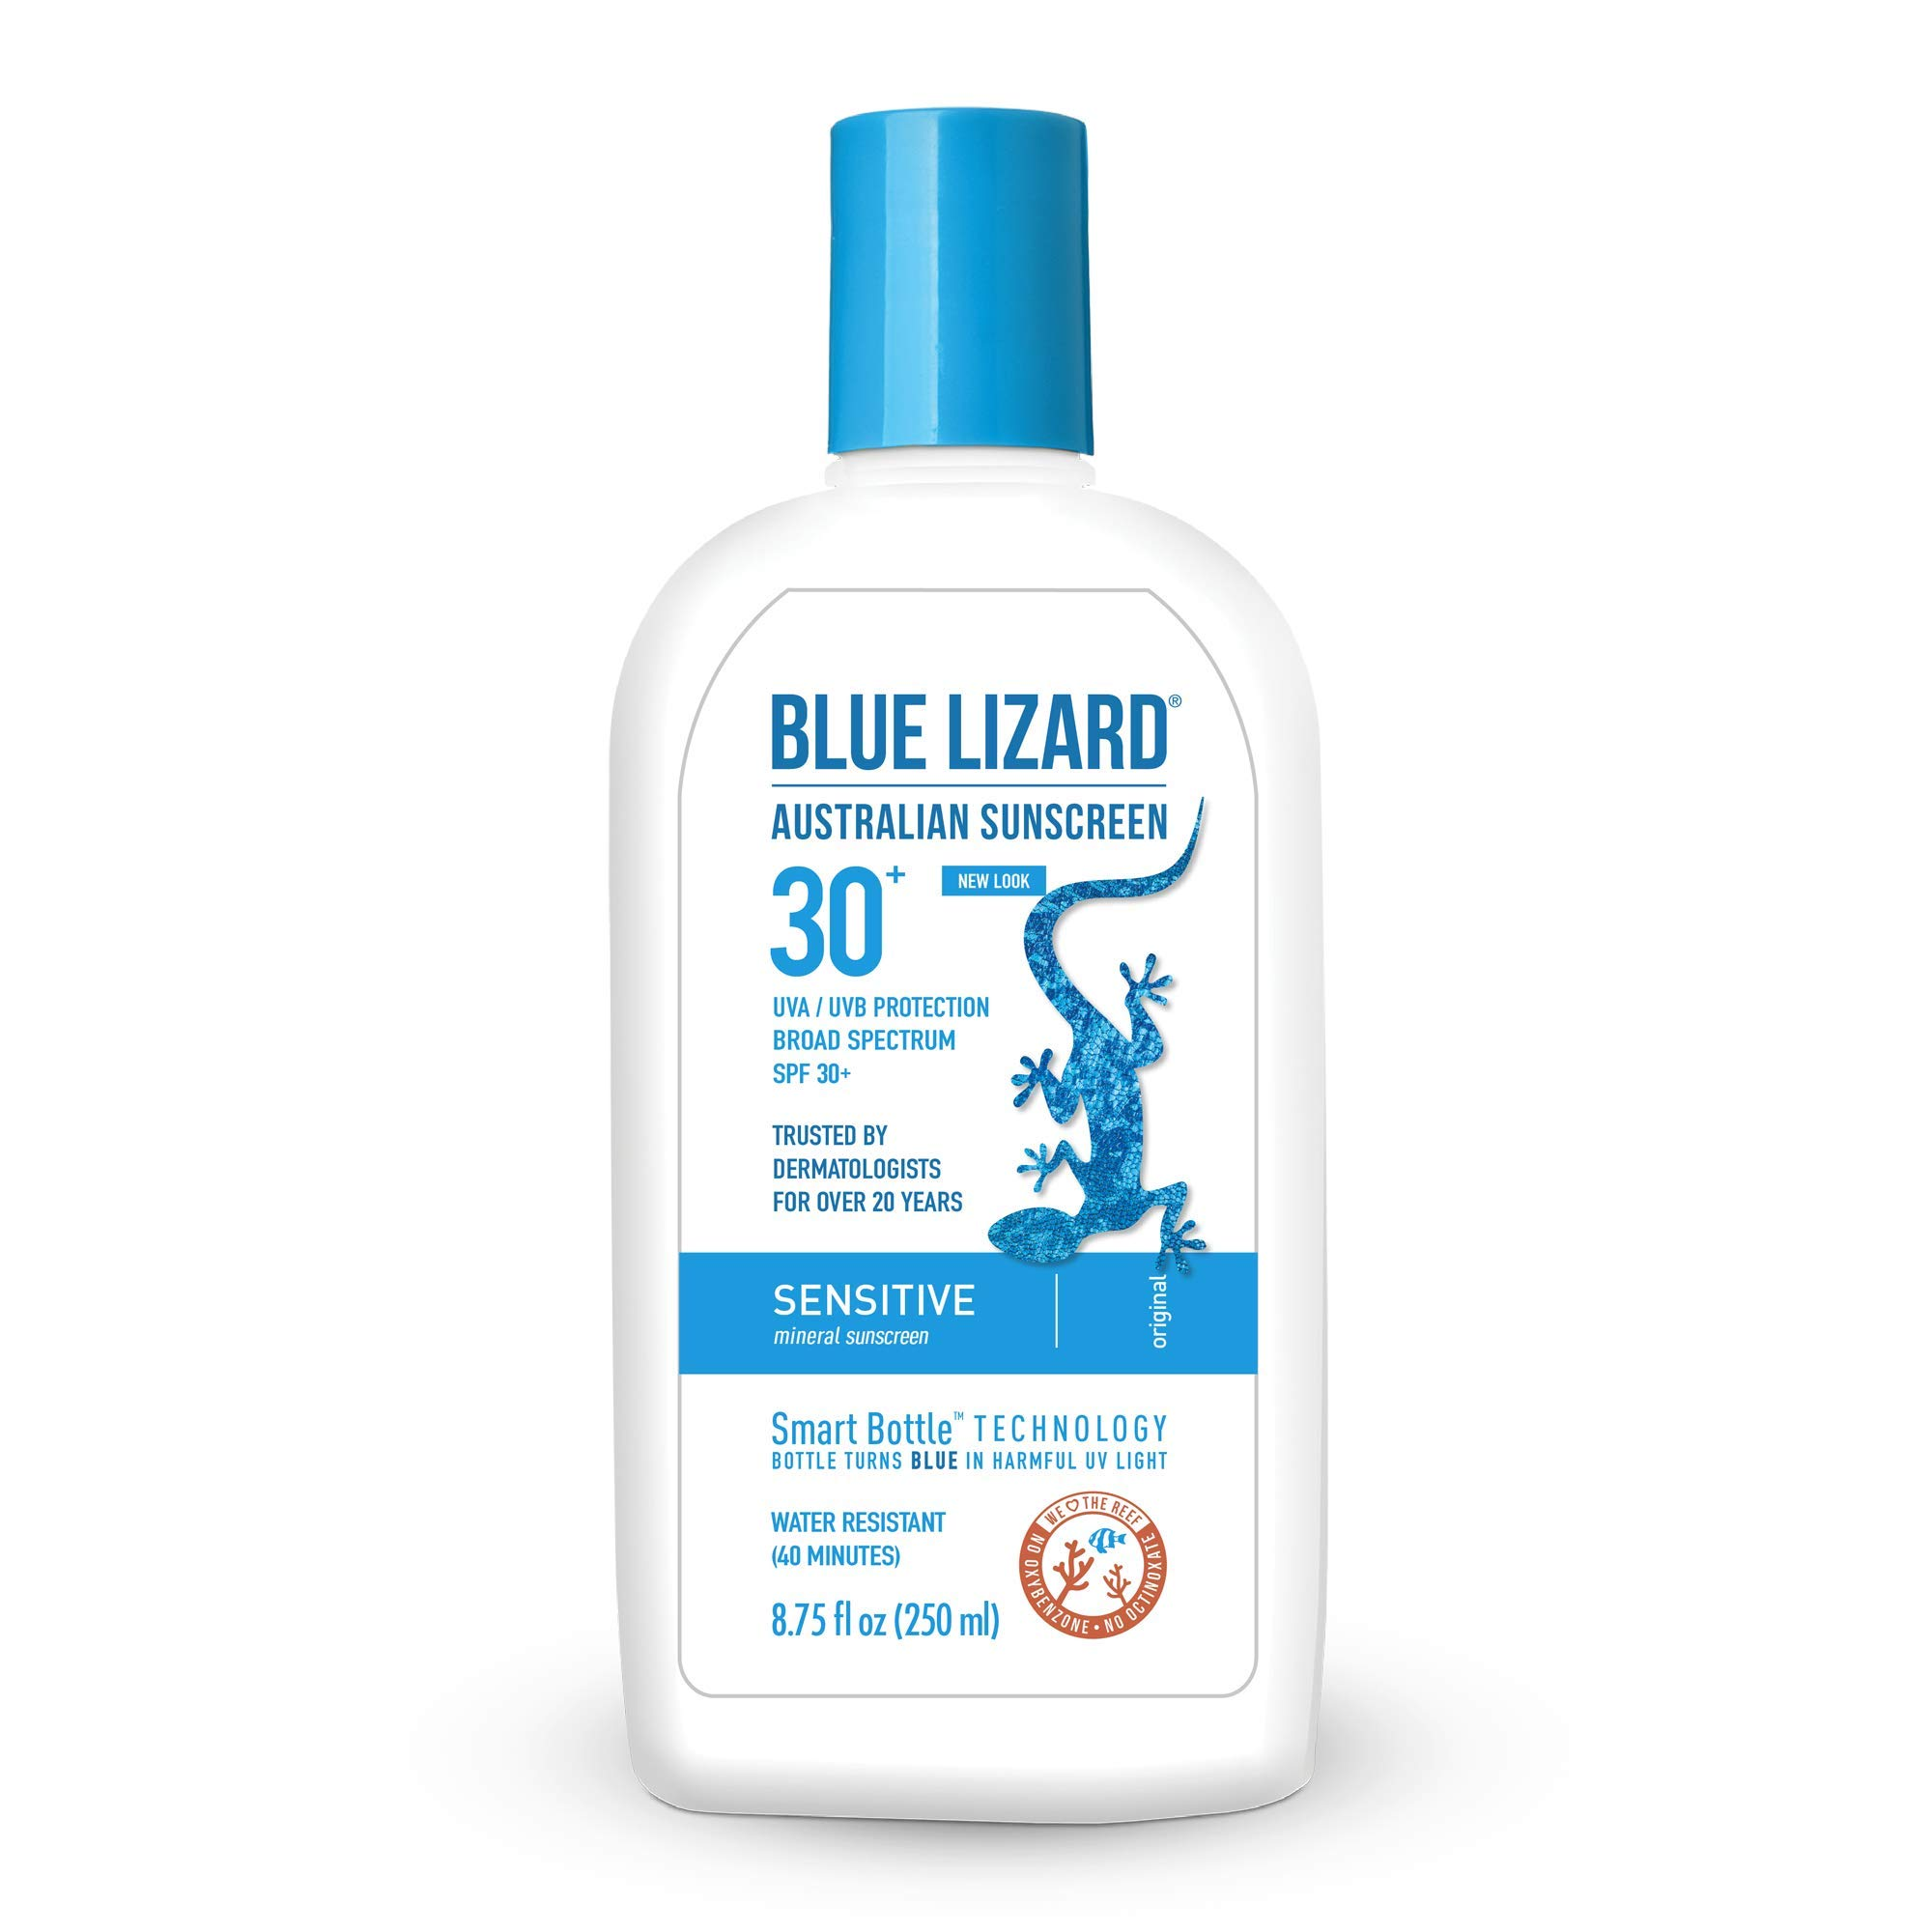 Blue Lizard Sensitive Mineral Sunscreen - No Chemical Actives - SPF 30+ UVA/UVB Protection, 8.75 oz by BLUE LIZARD